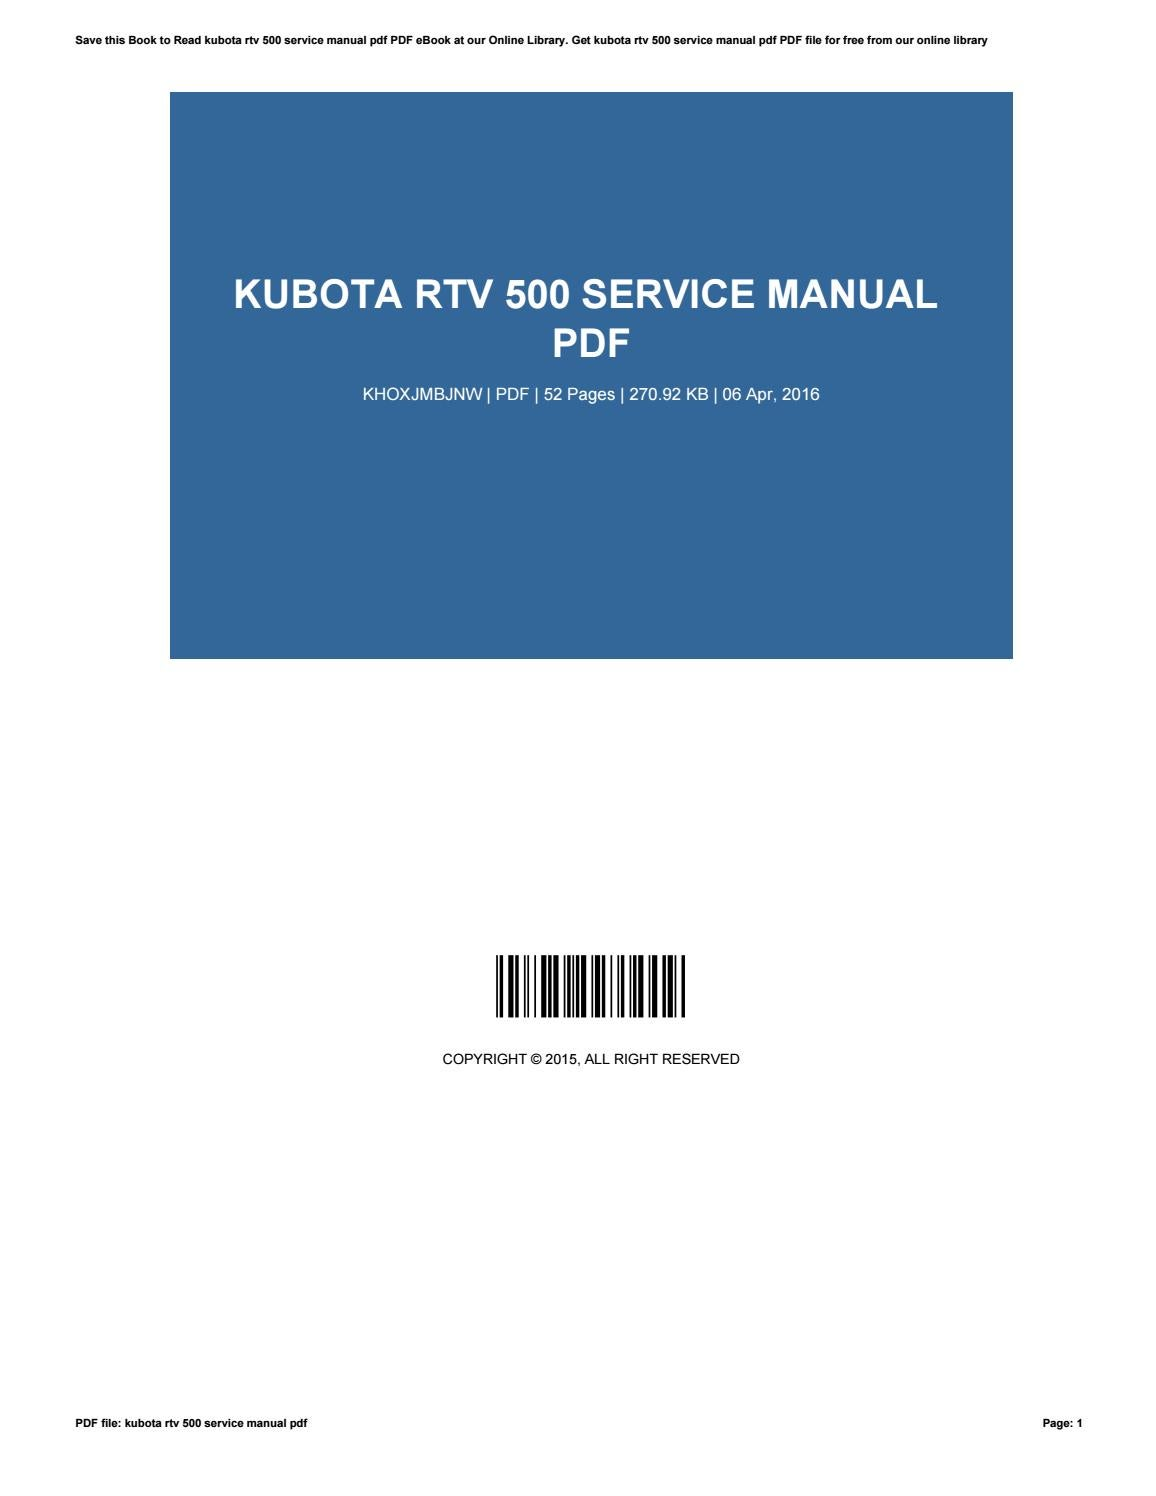 Kubota B7000 Manuals Free Download Wiring Library Rtv 1140 Tractor Diagram 500 Service Manual Pdf By Vincentmoore1820 Issuu